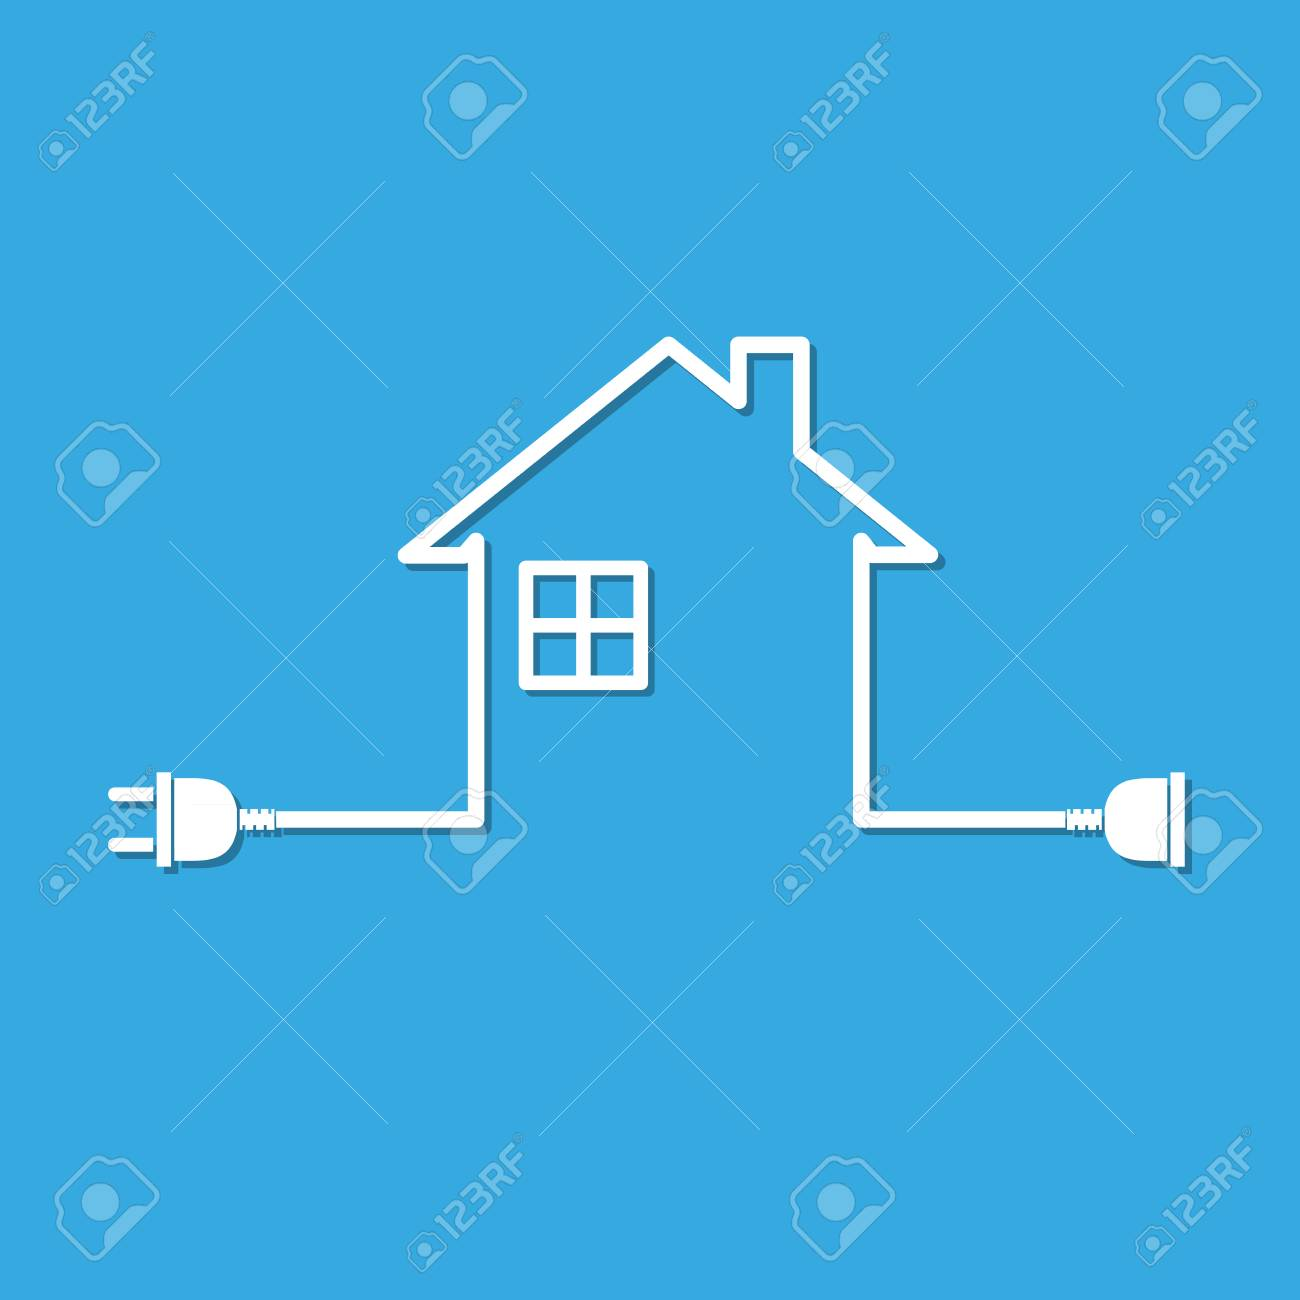 Silhouette of house with wire plug and socket vector illustration silhouette of house with wire plug and socket vector illustration simple icon with house asfbconference2016 Image collections